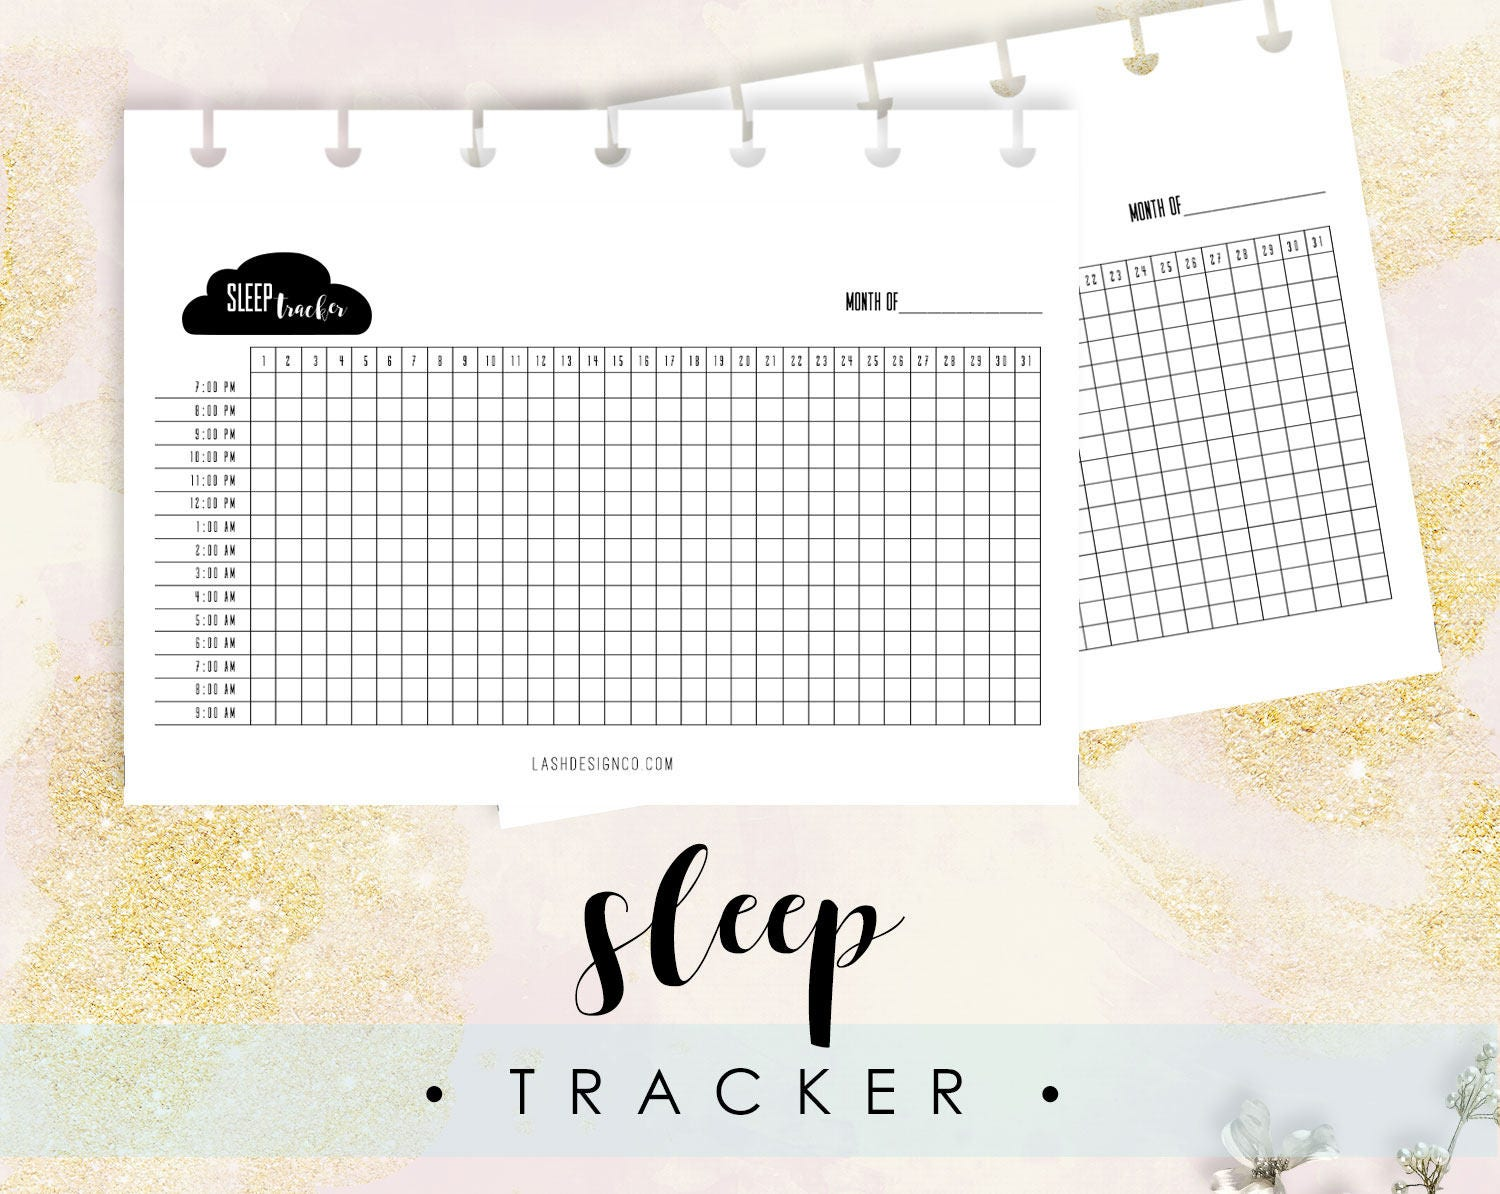 It's just a picture of Delicate Sleep Tracker Printable